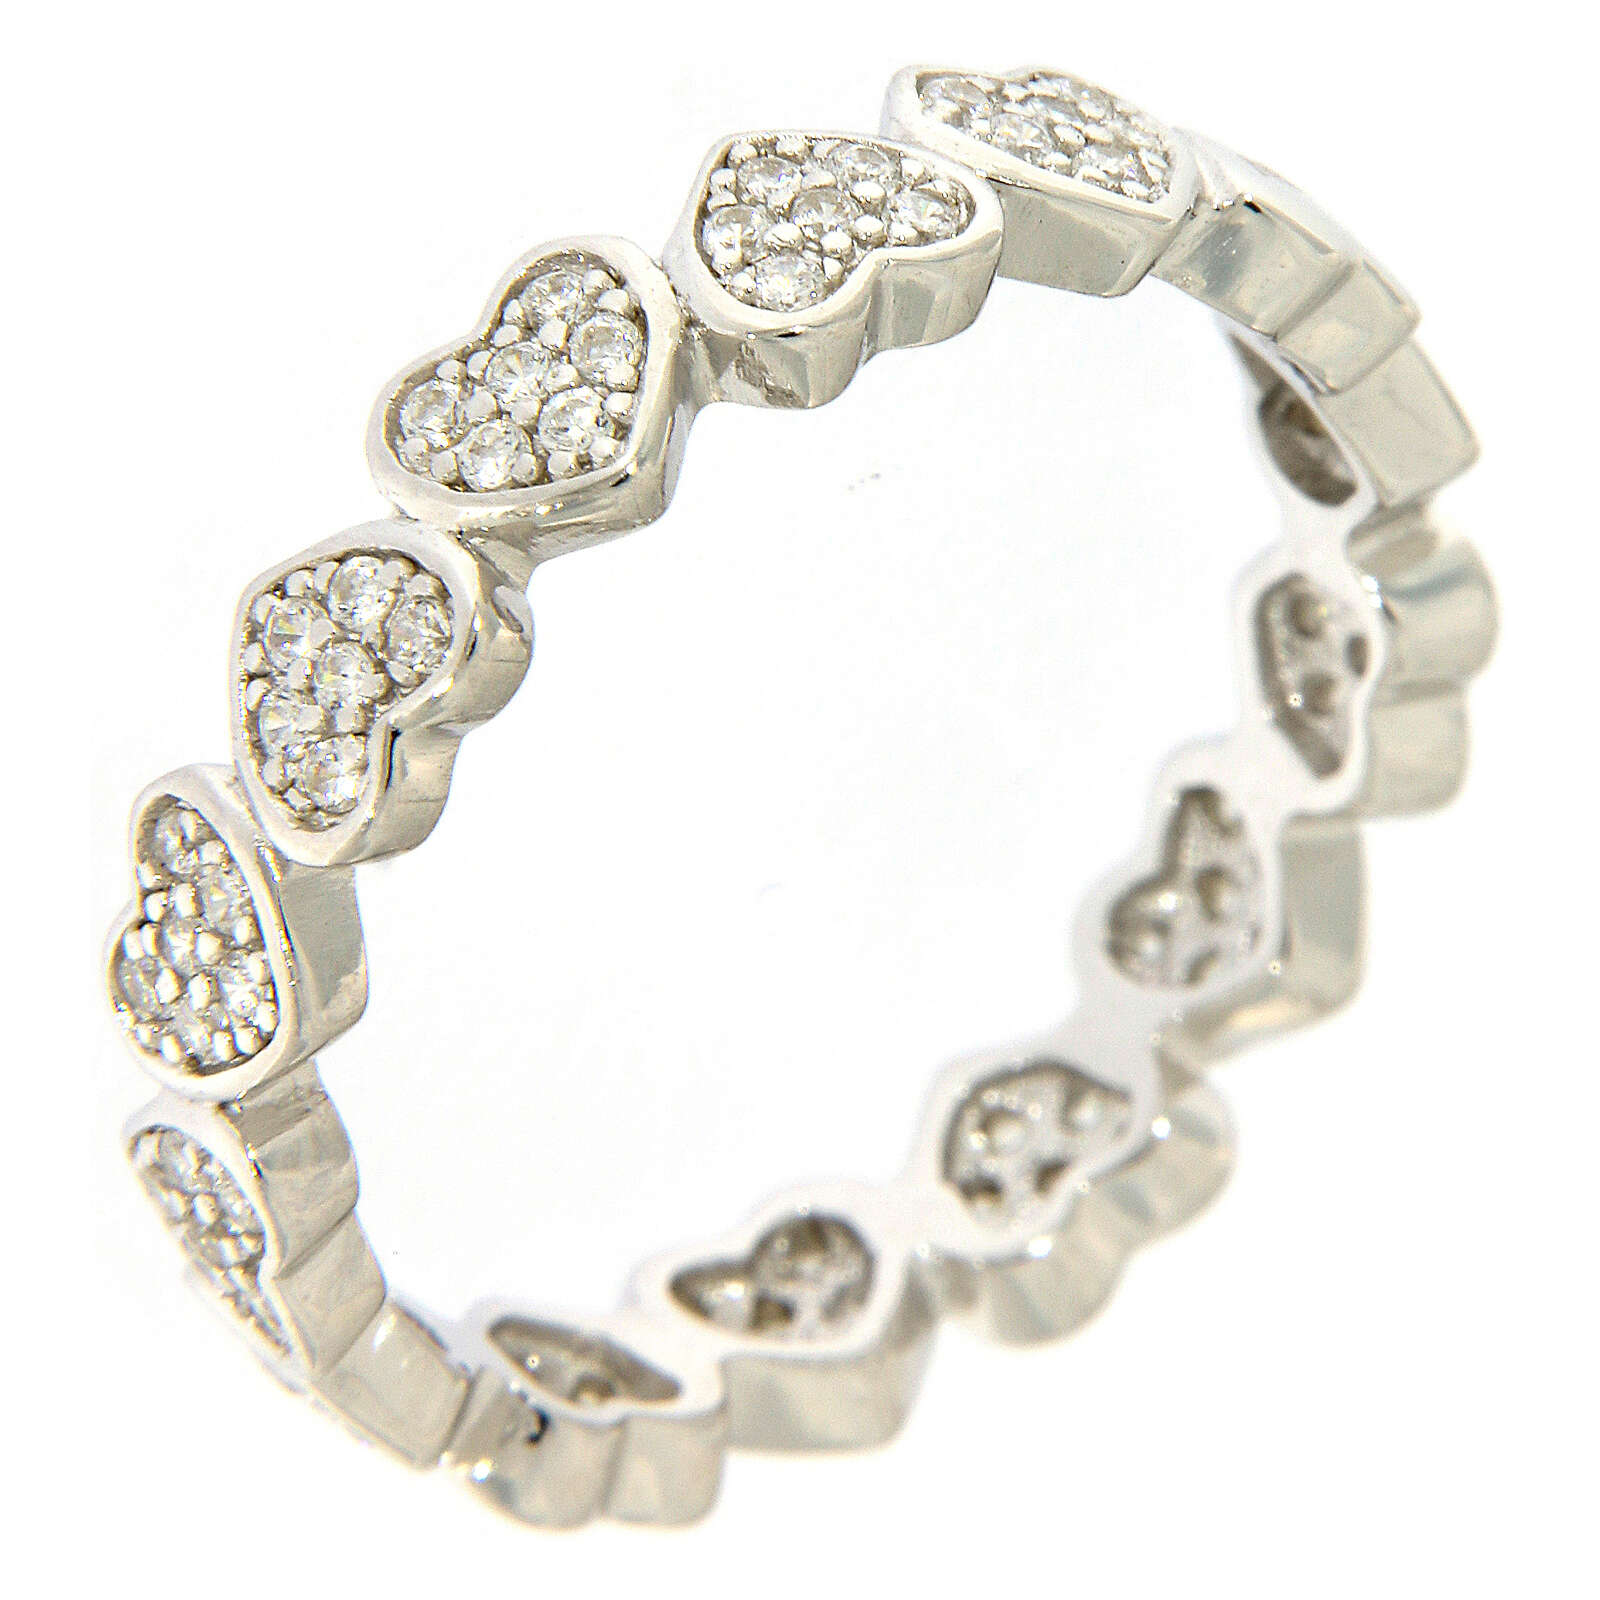 Ring AMEN heart and zircons 925 silver 3